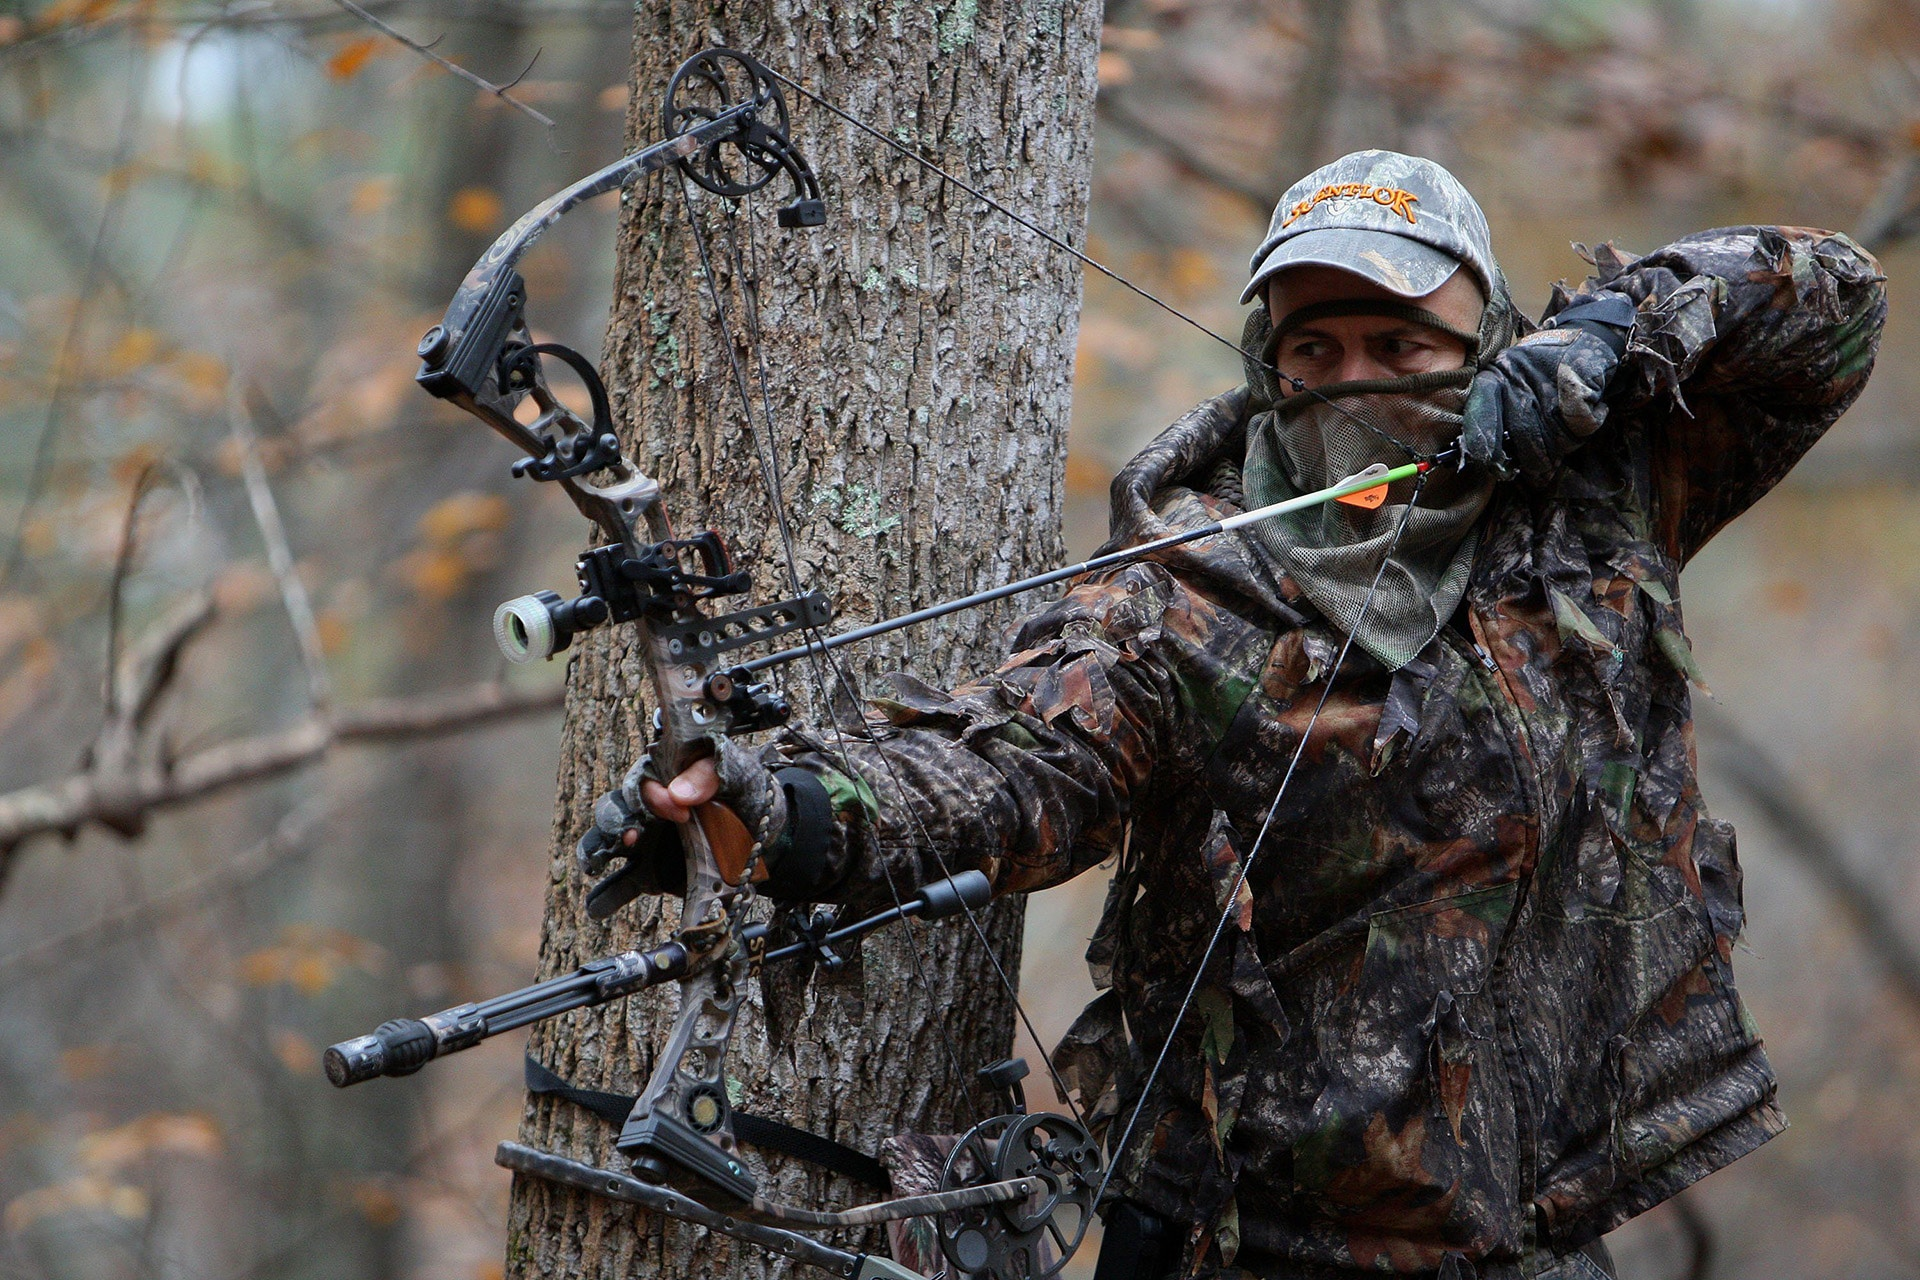 Best Compound Bows Top Rated and Reviewed